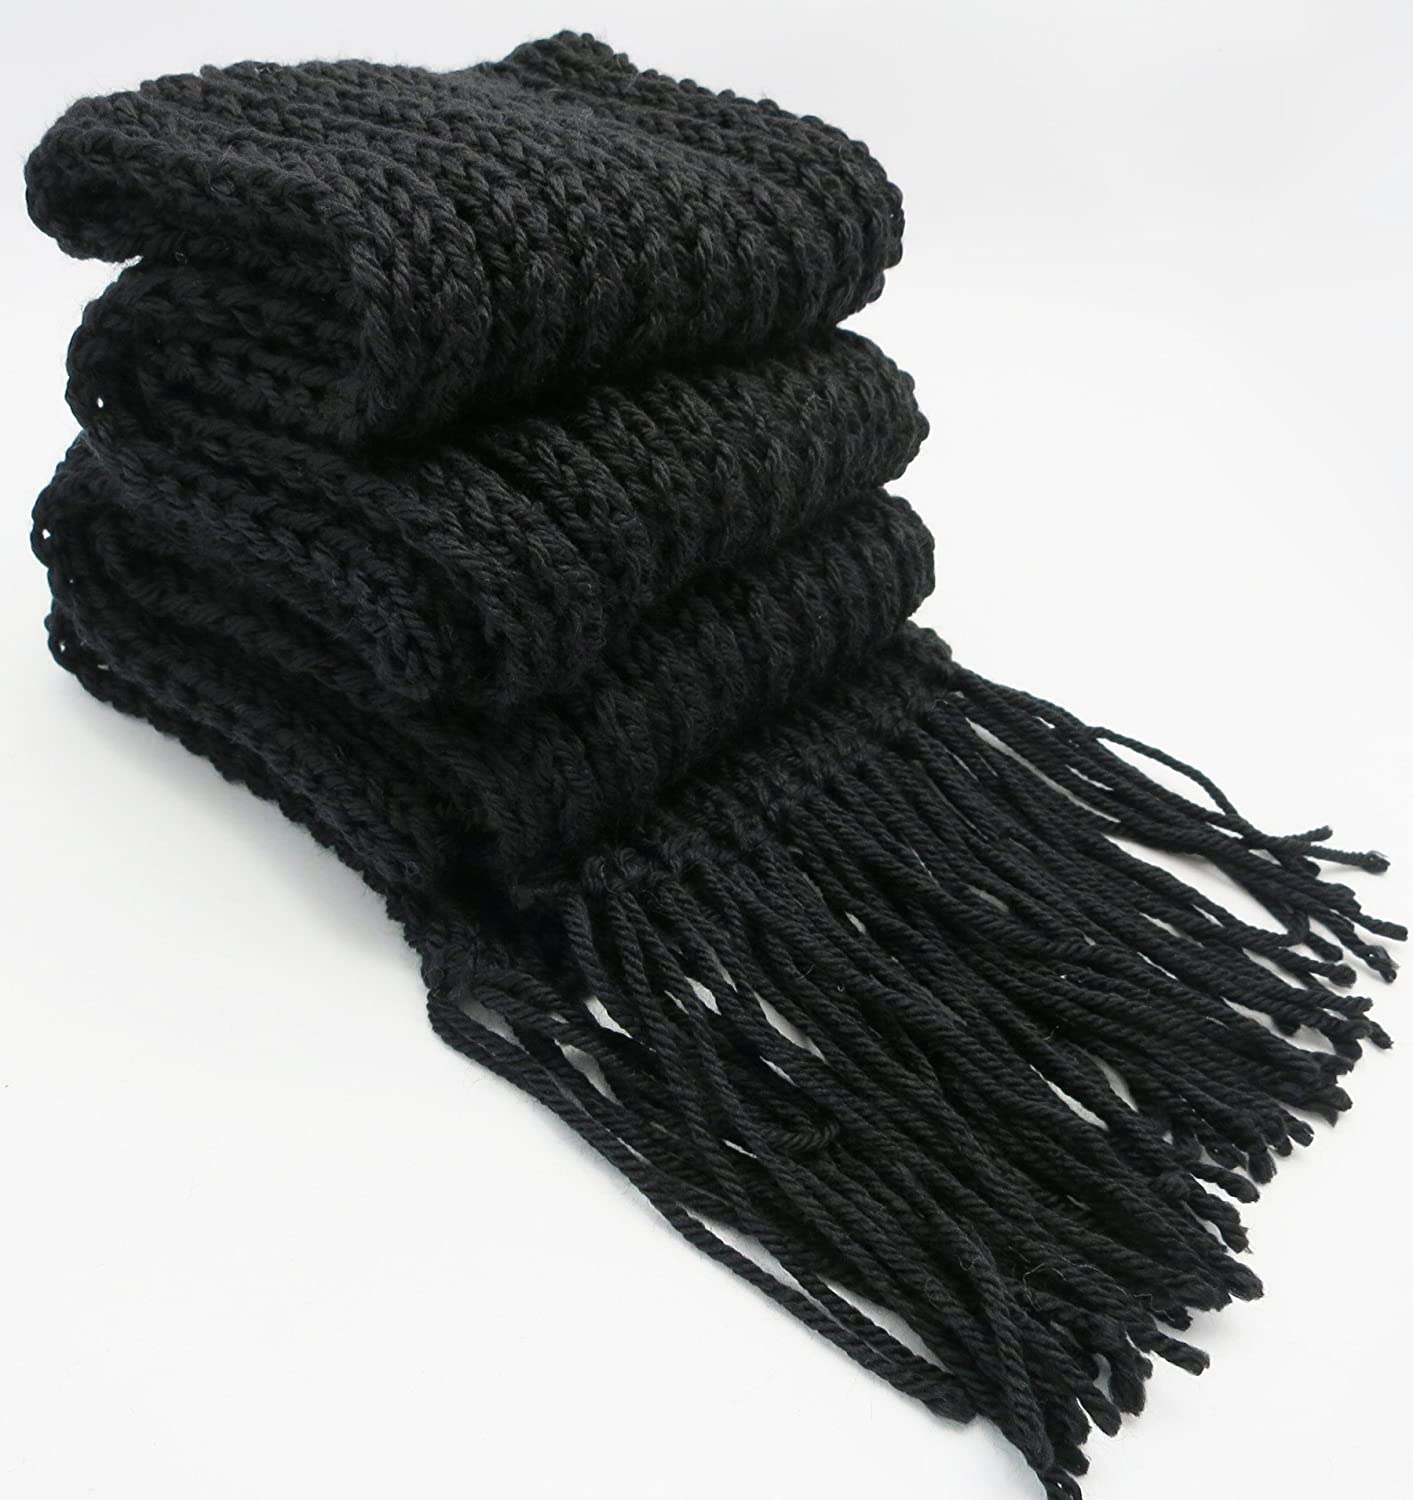 Elegant Black GIFT IDEA FOR MEN Handmade Softest Acrylic Ribbed Scarf